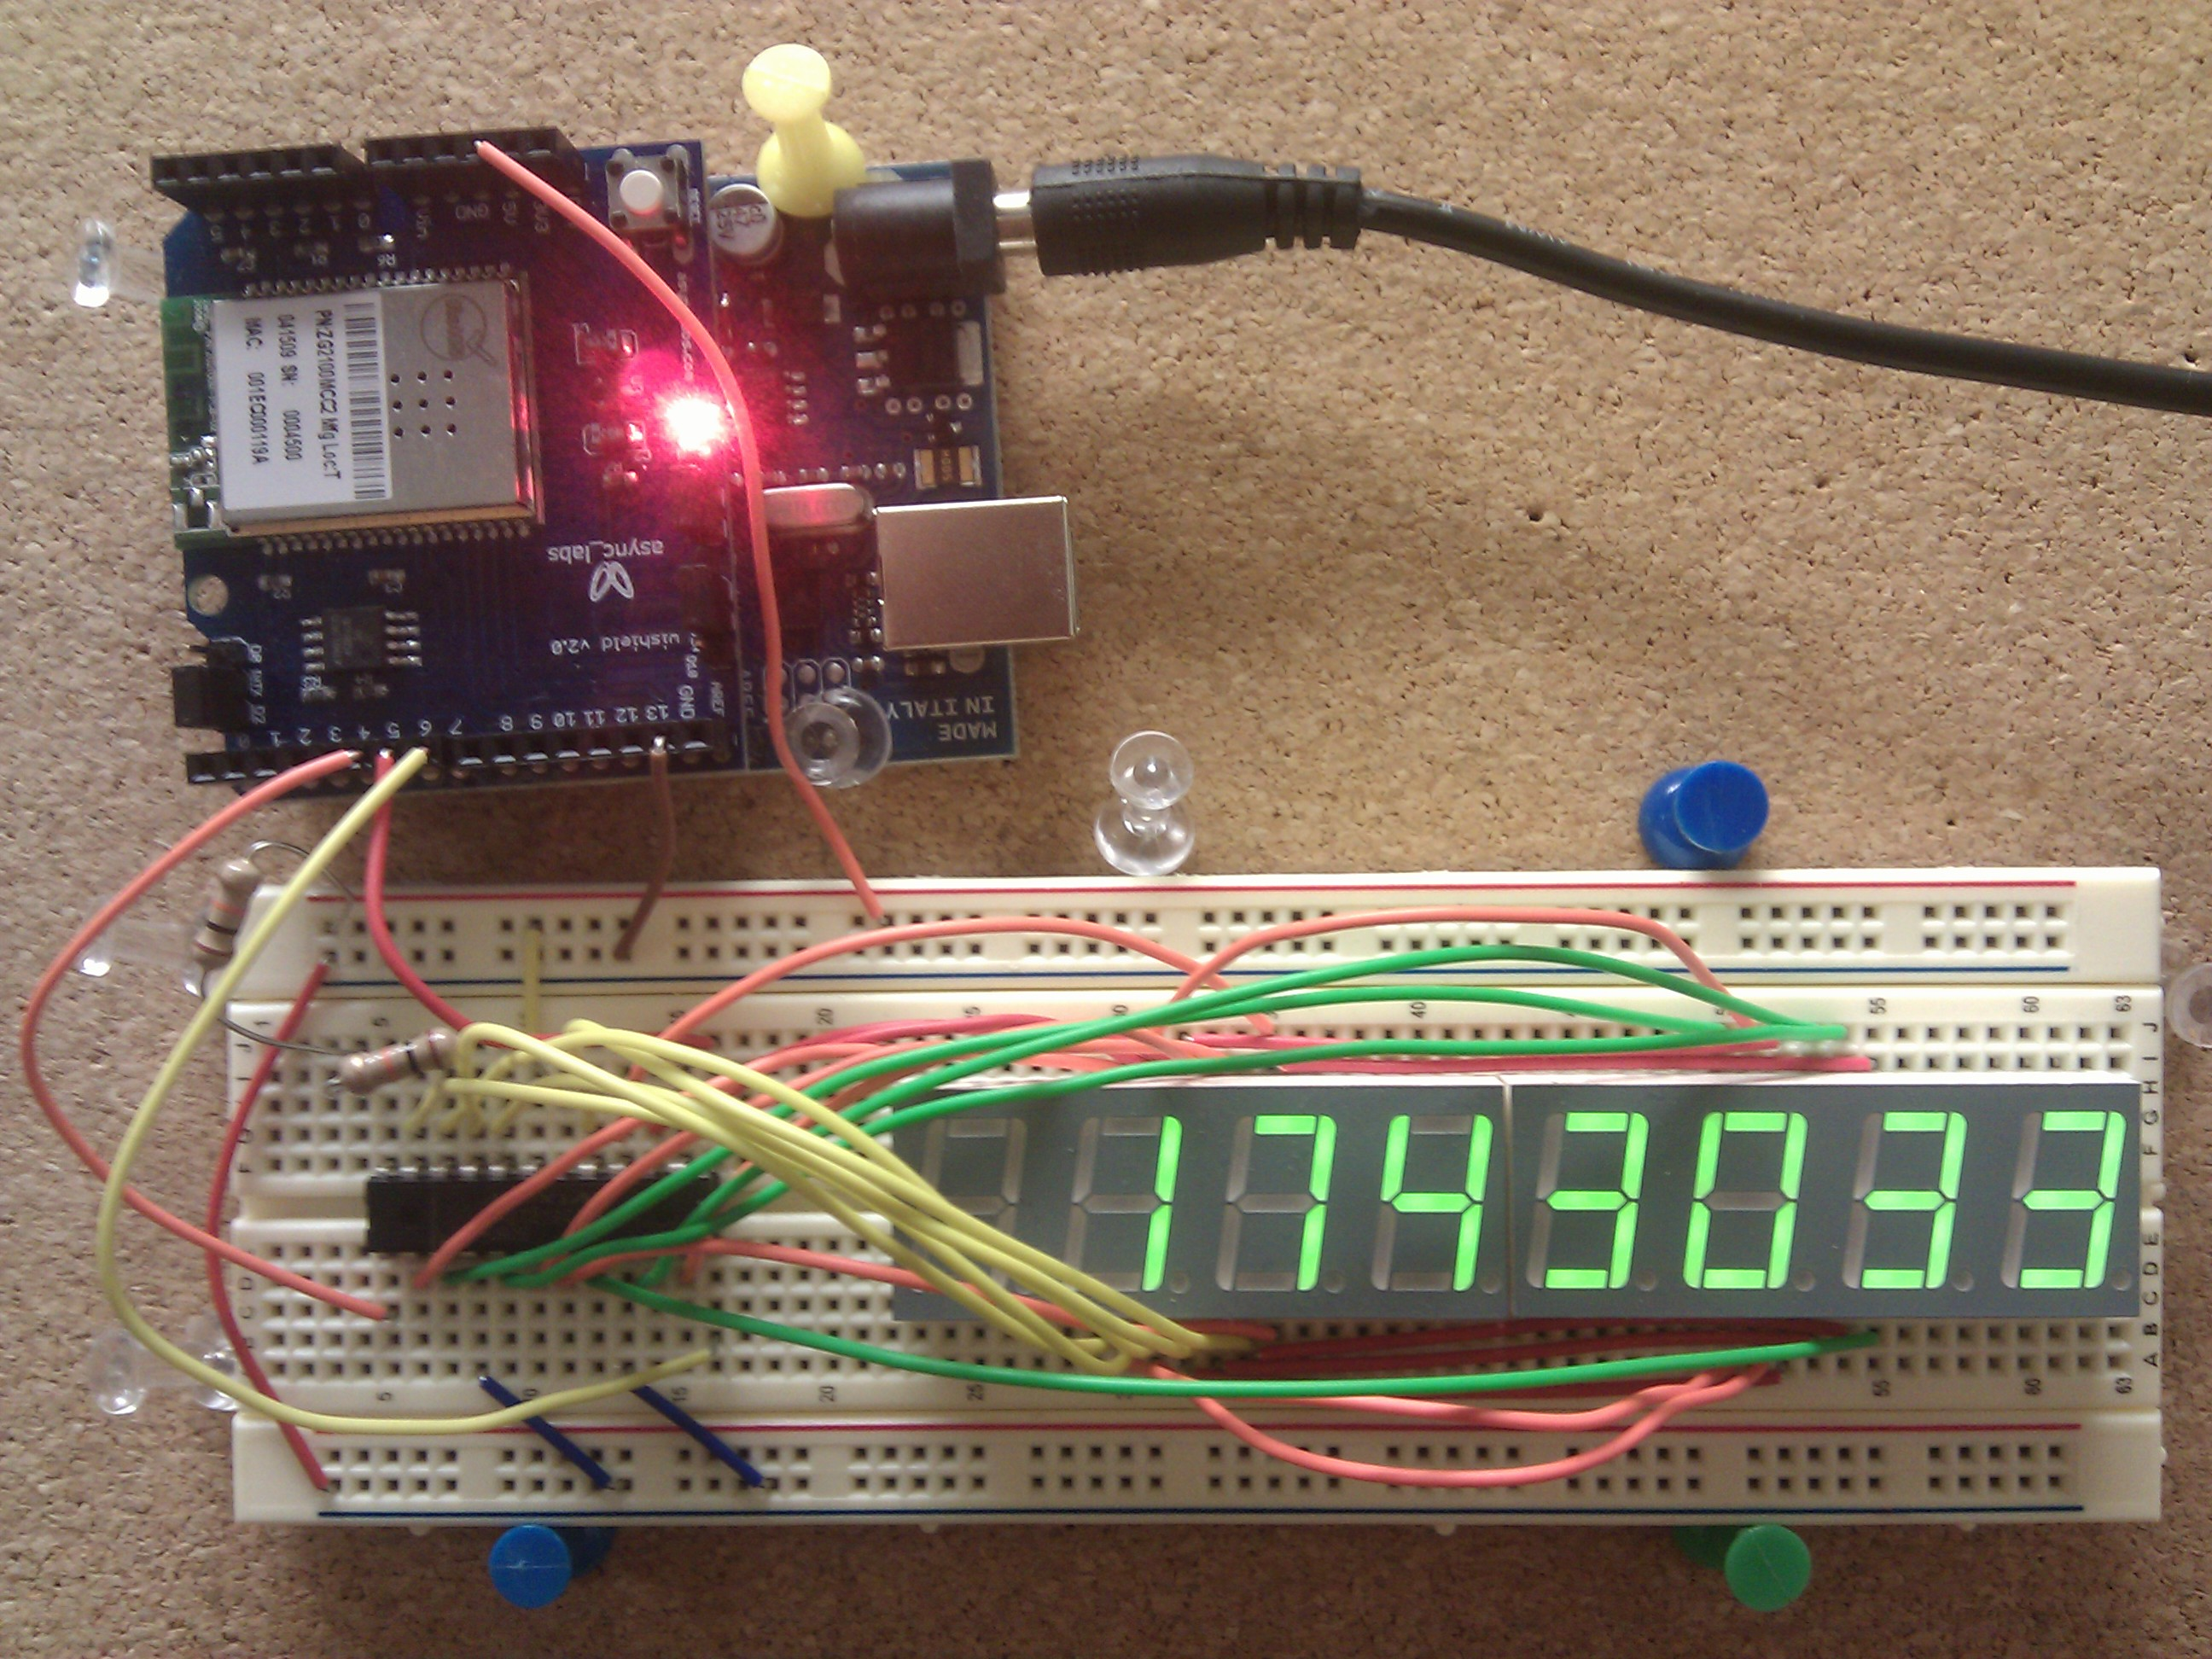 Ardiuno WiFi 8 digit counter on a bread board